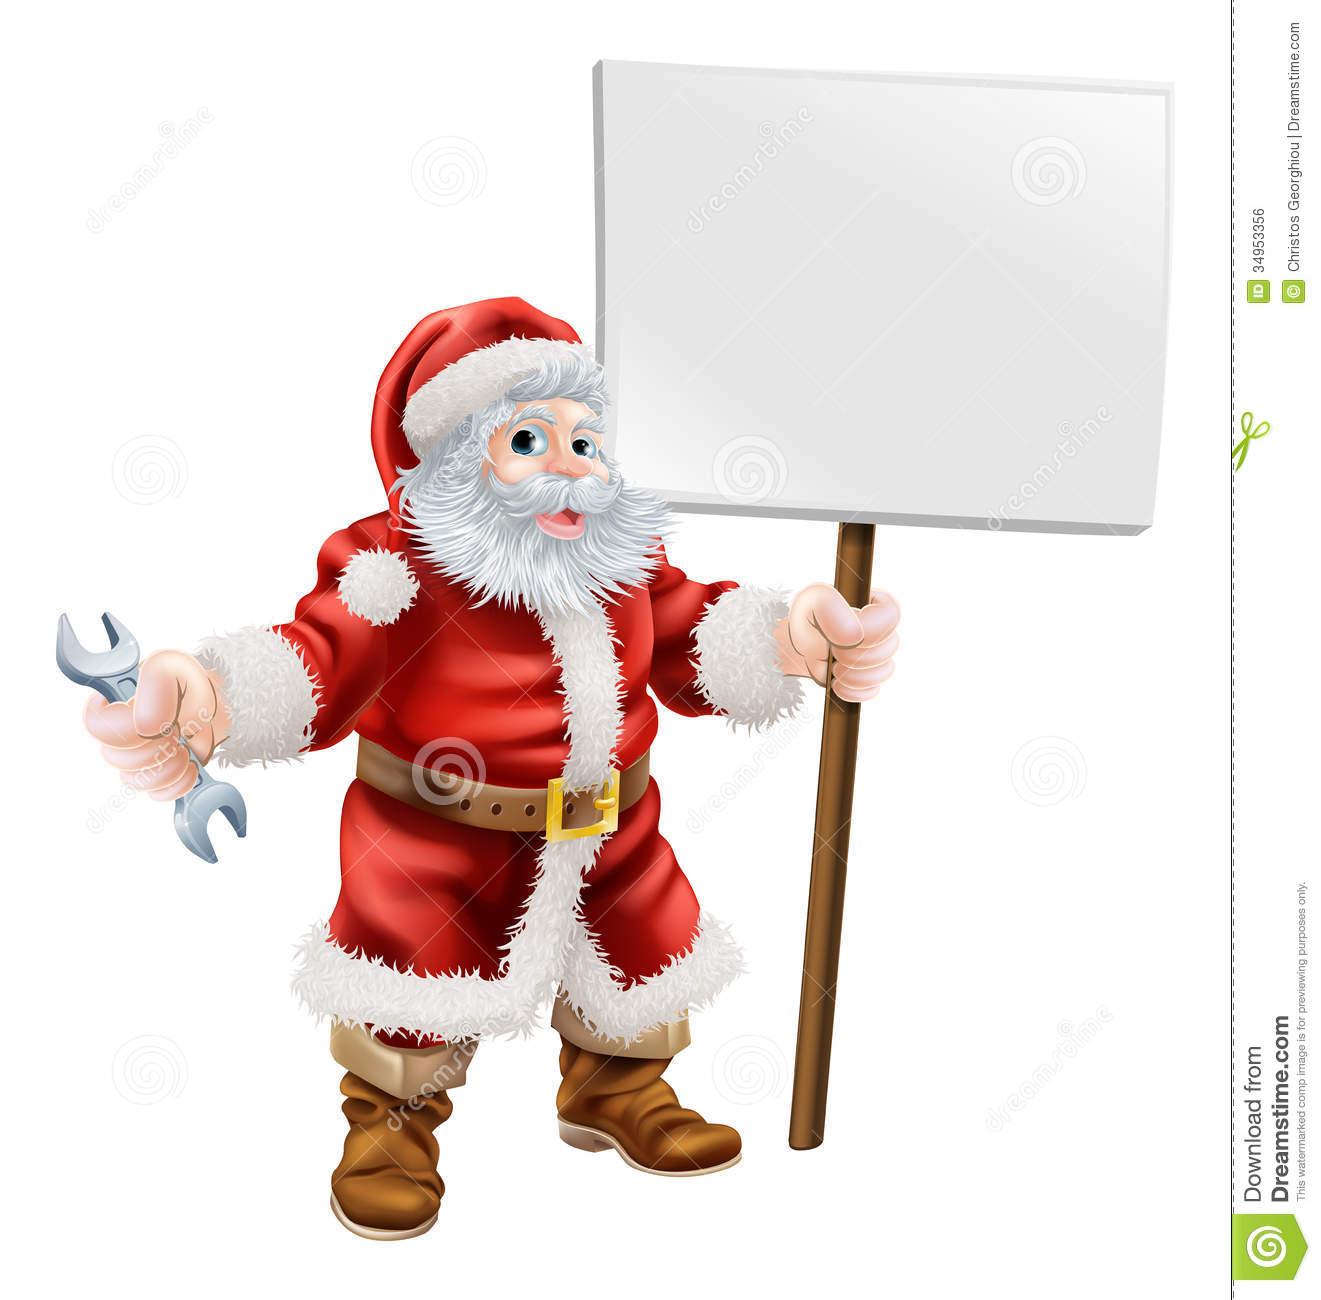 Santa Holding Spanner And Sign Royalty Free Stock Image